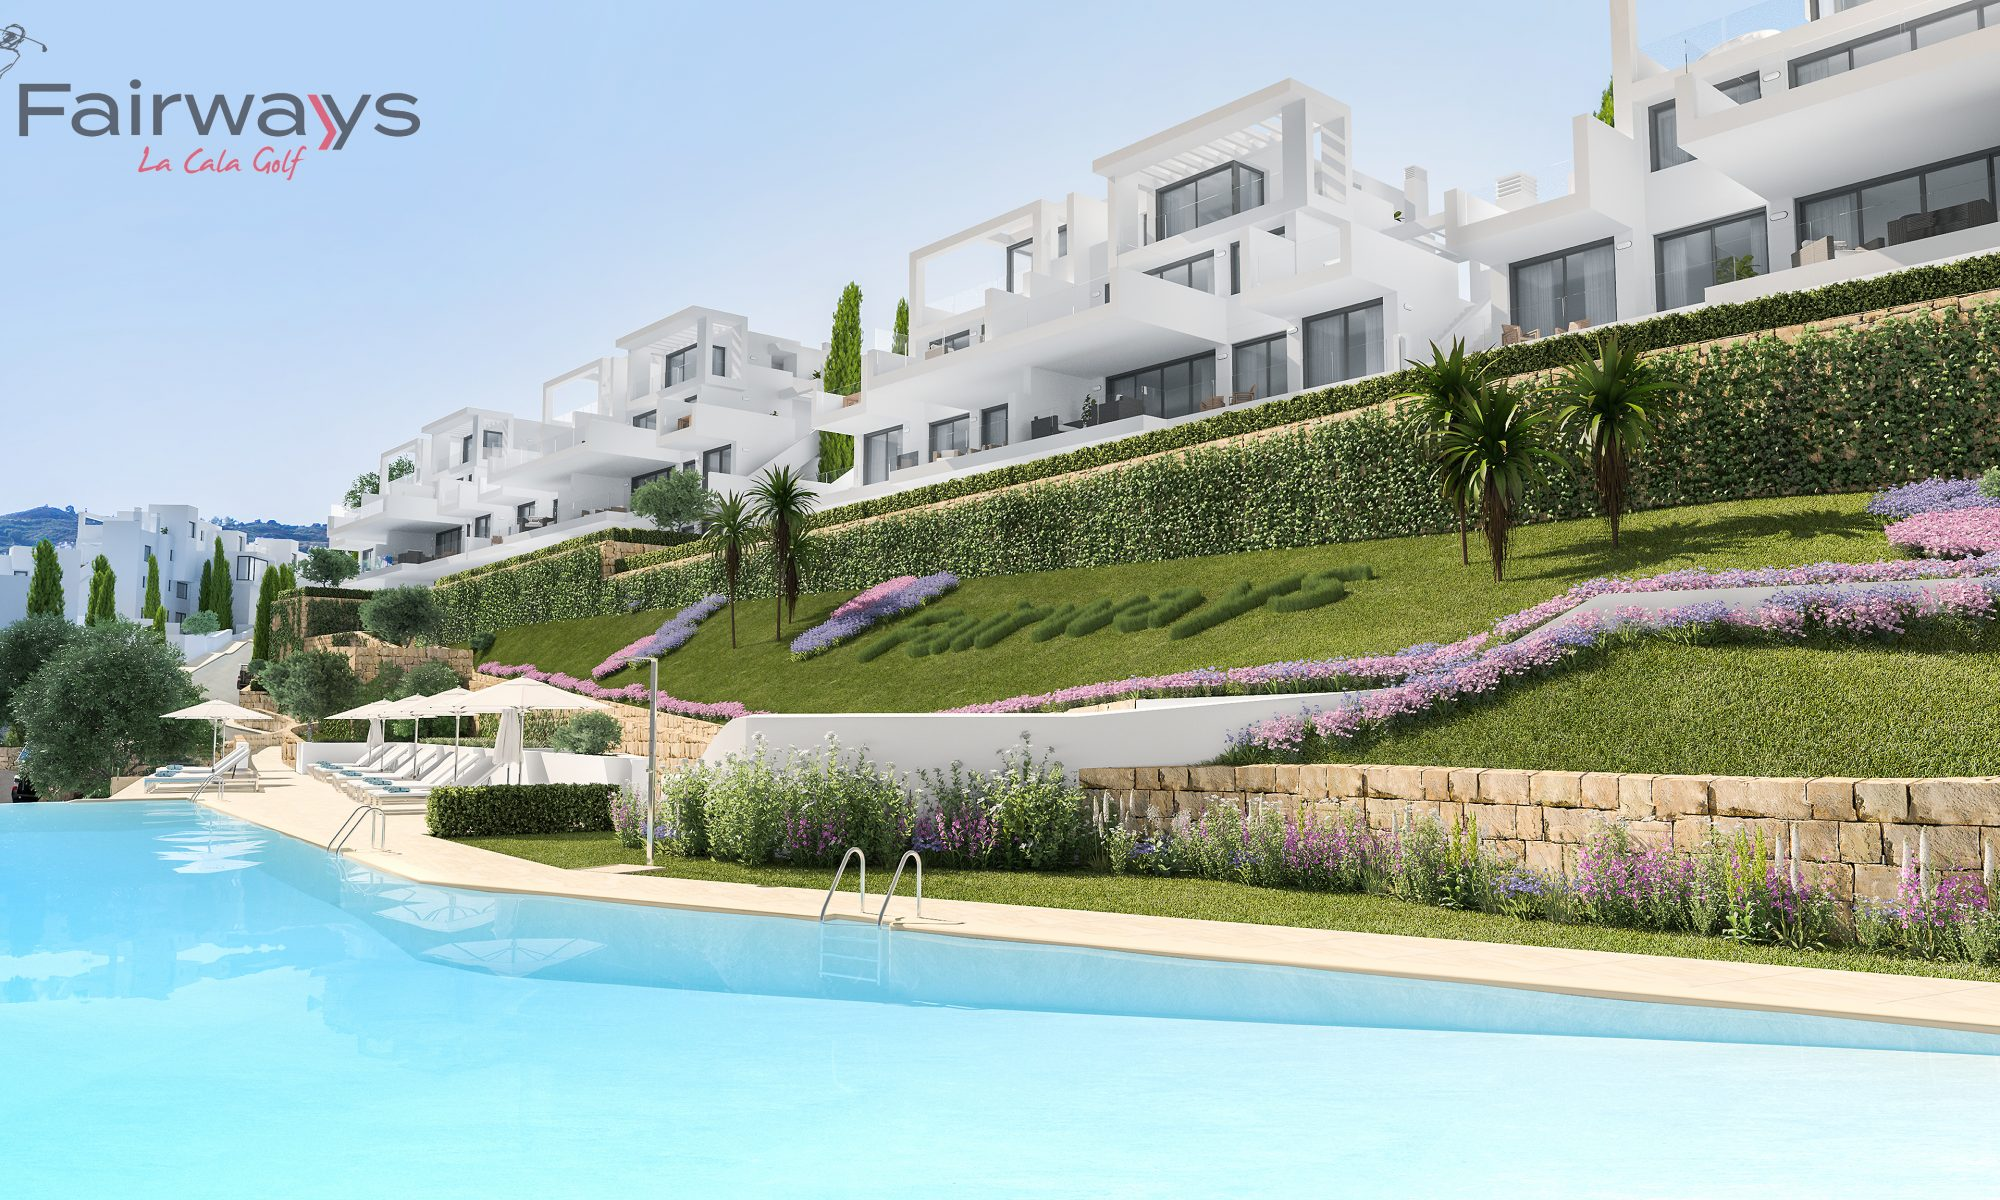 fairways la cala golf new frontline golf apartments with spa and gym for sale in la cala golf resort